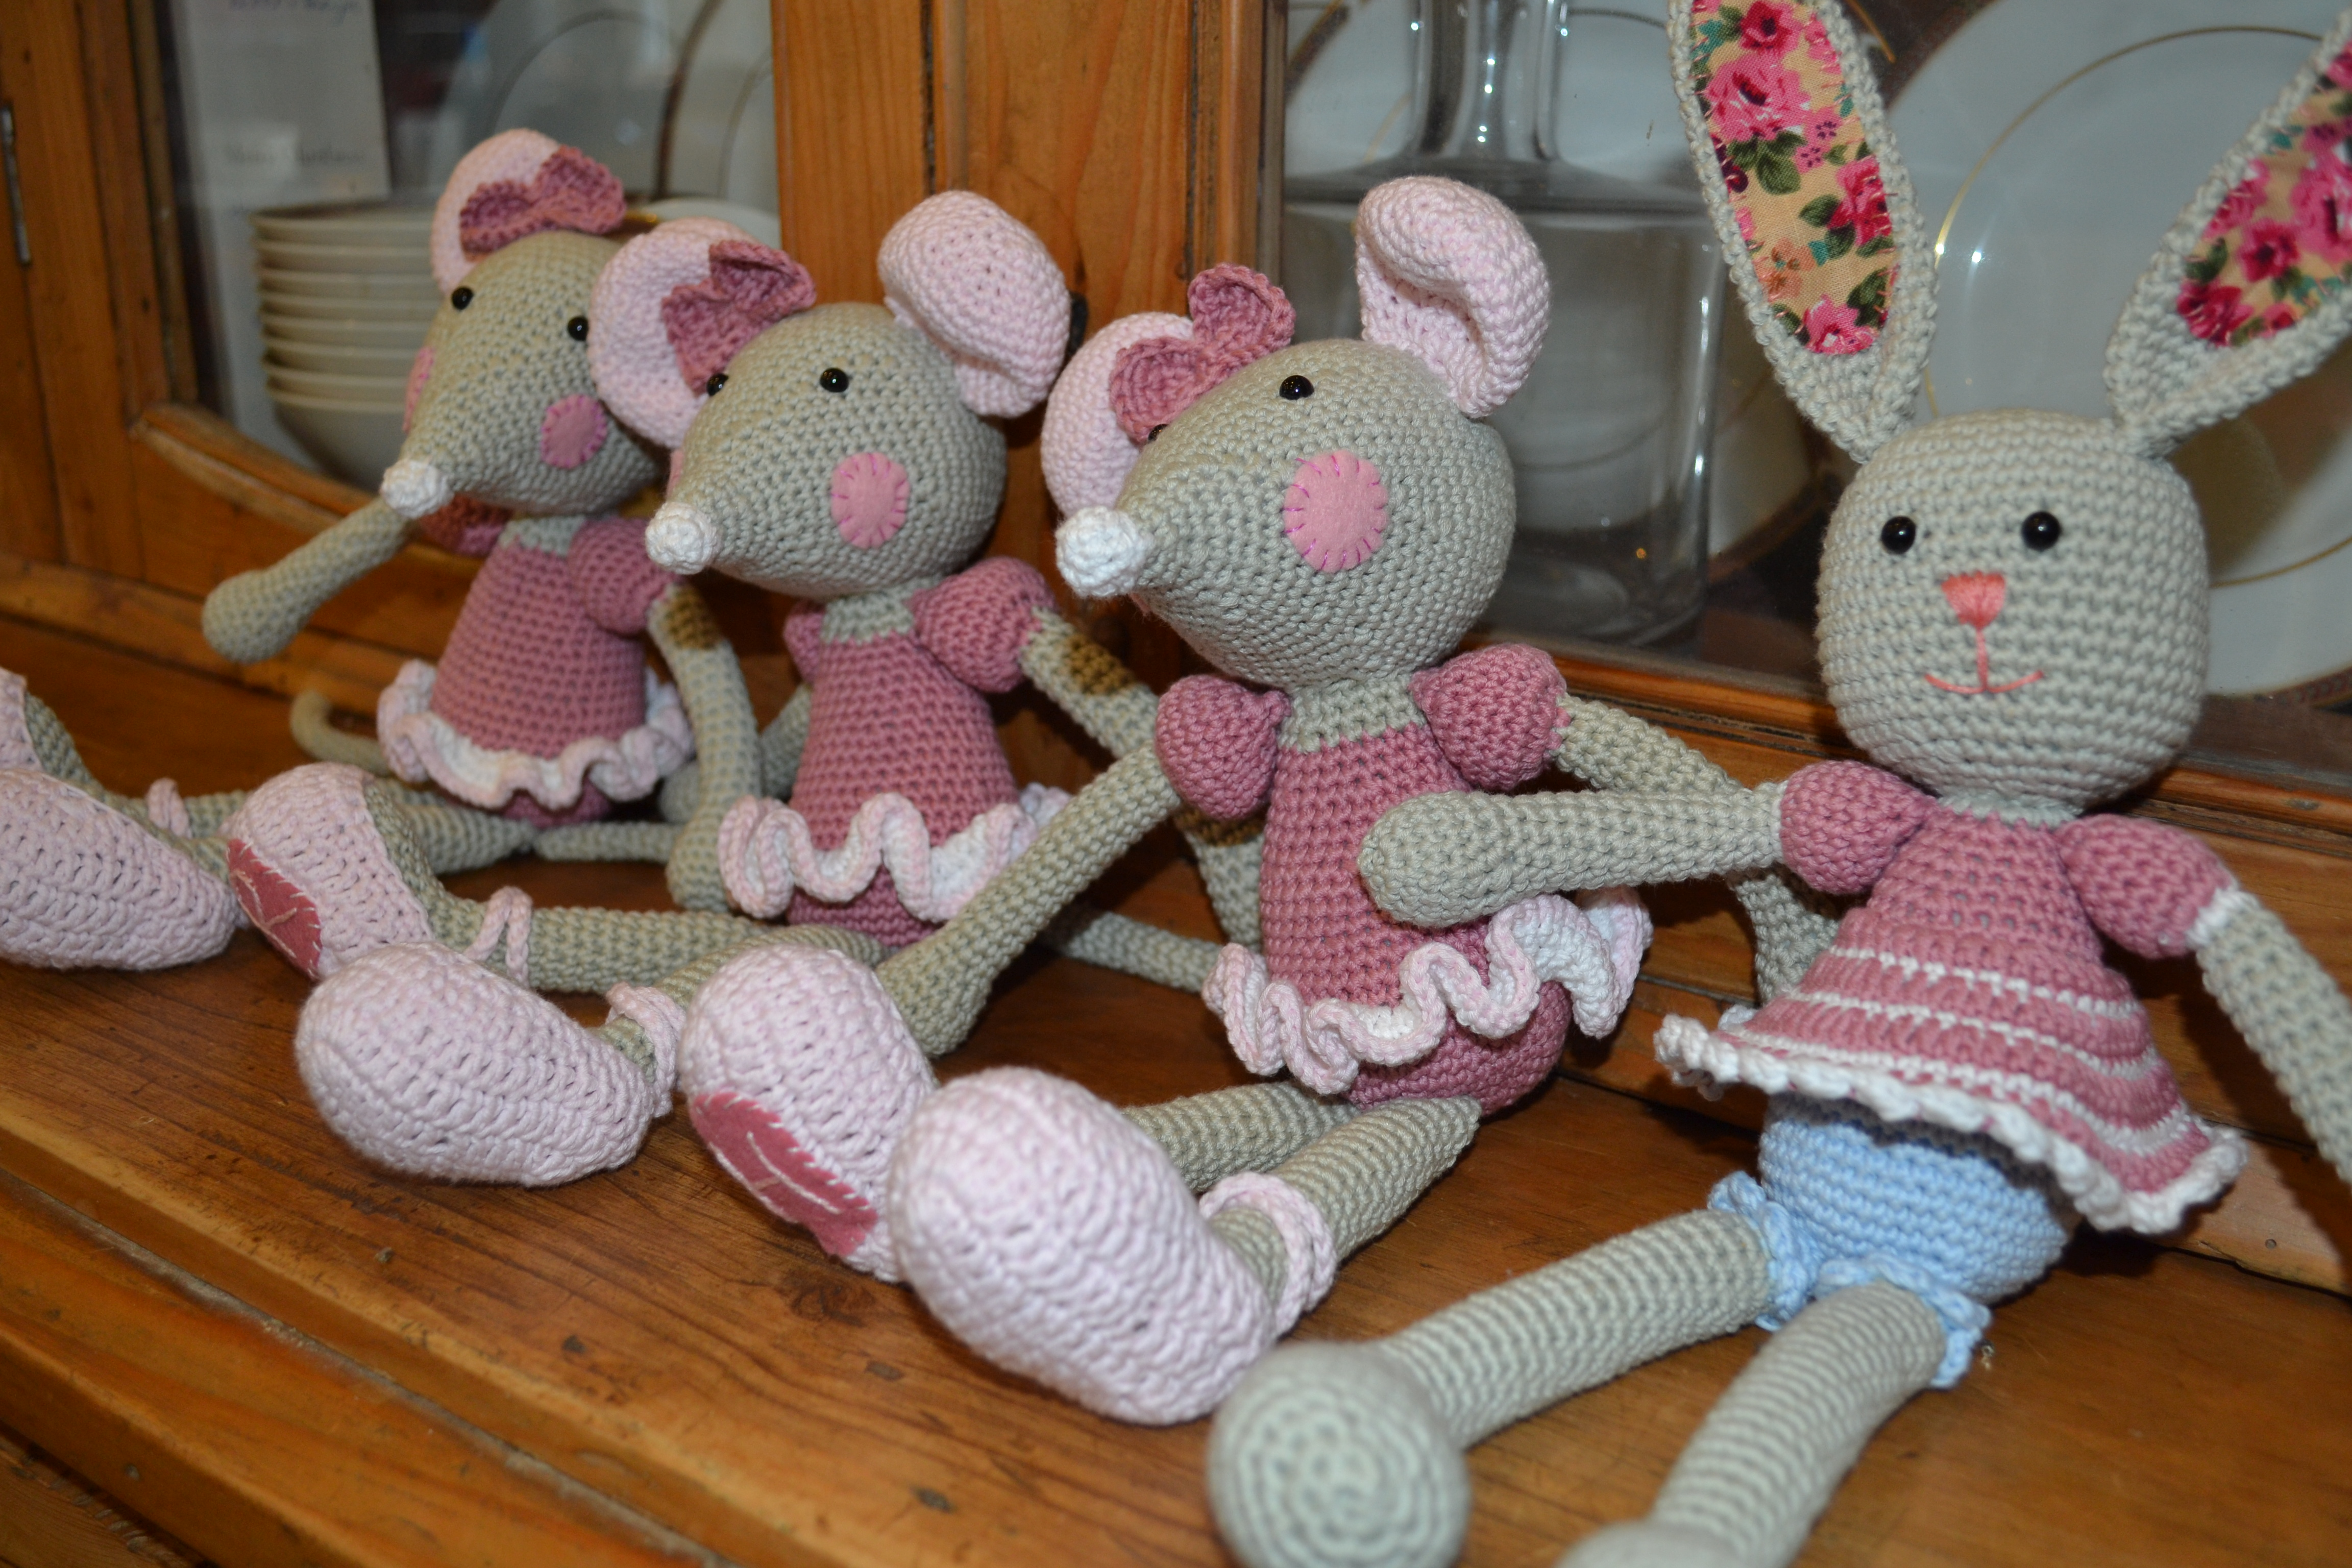 3 mice and a bunny | Love, Lucie